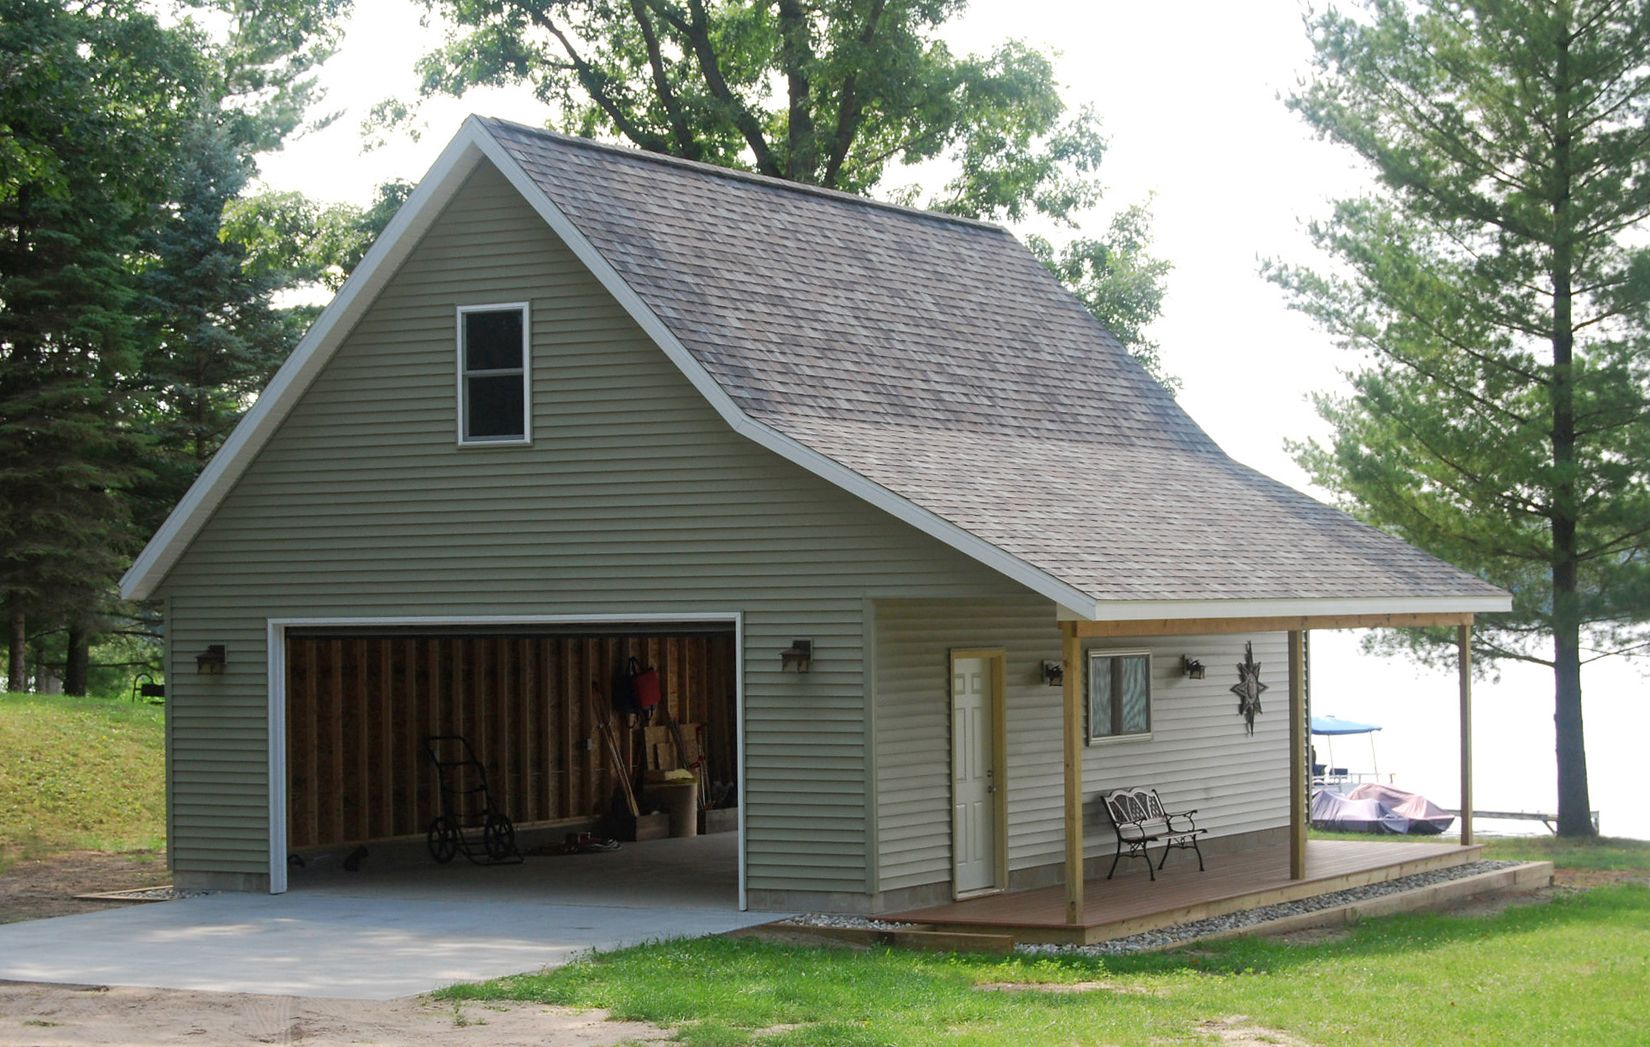 Pole barn garage plans welcome to jb custom homes where for A frame house plans with garage